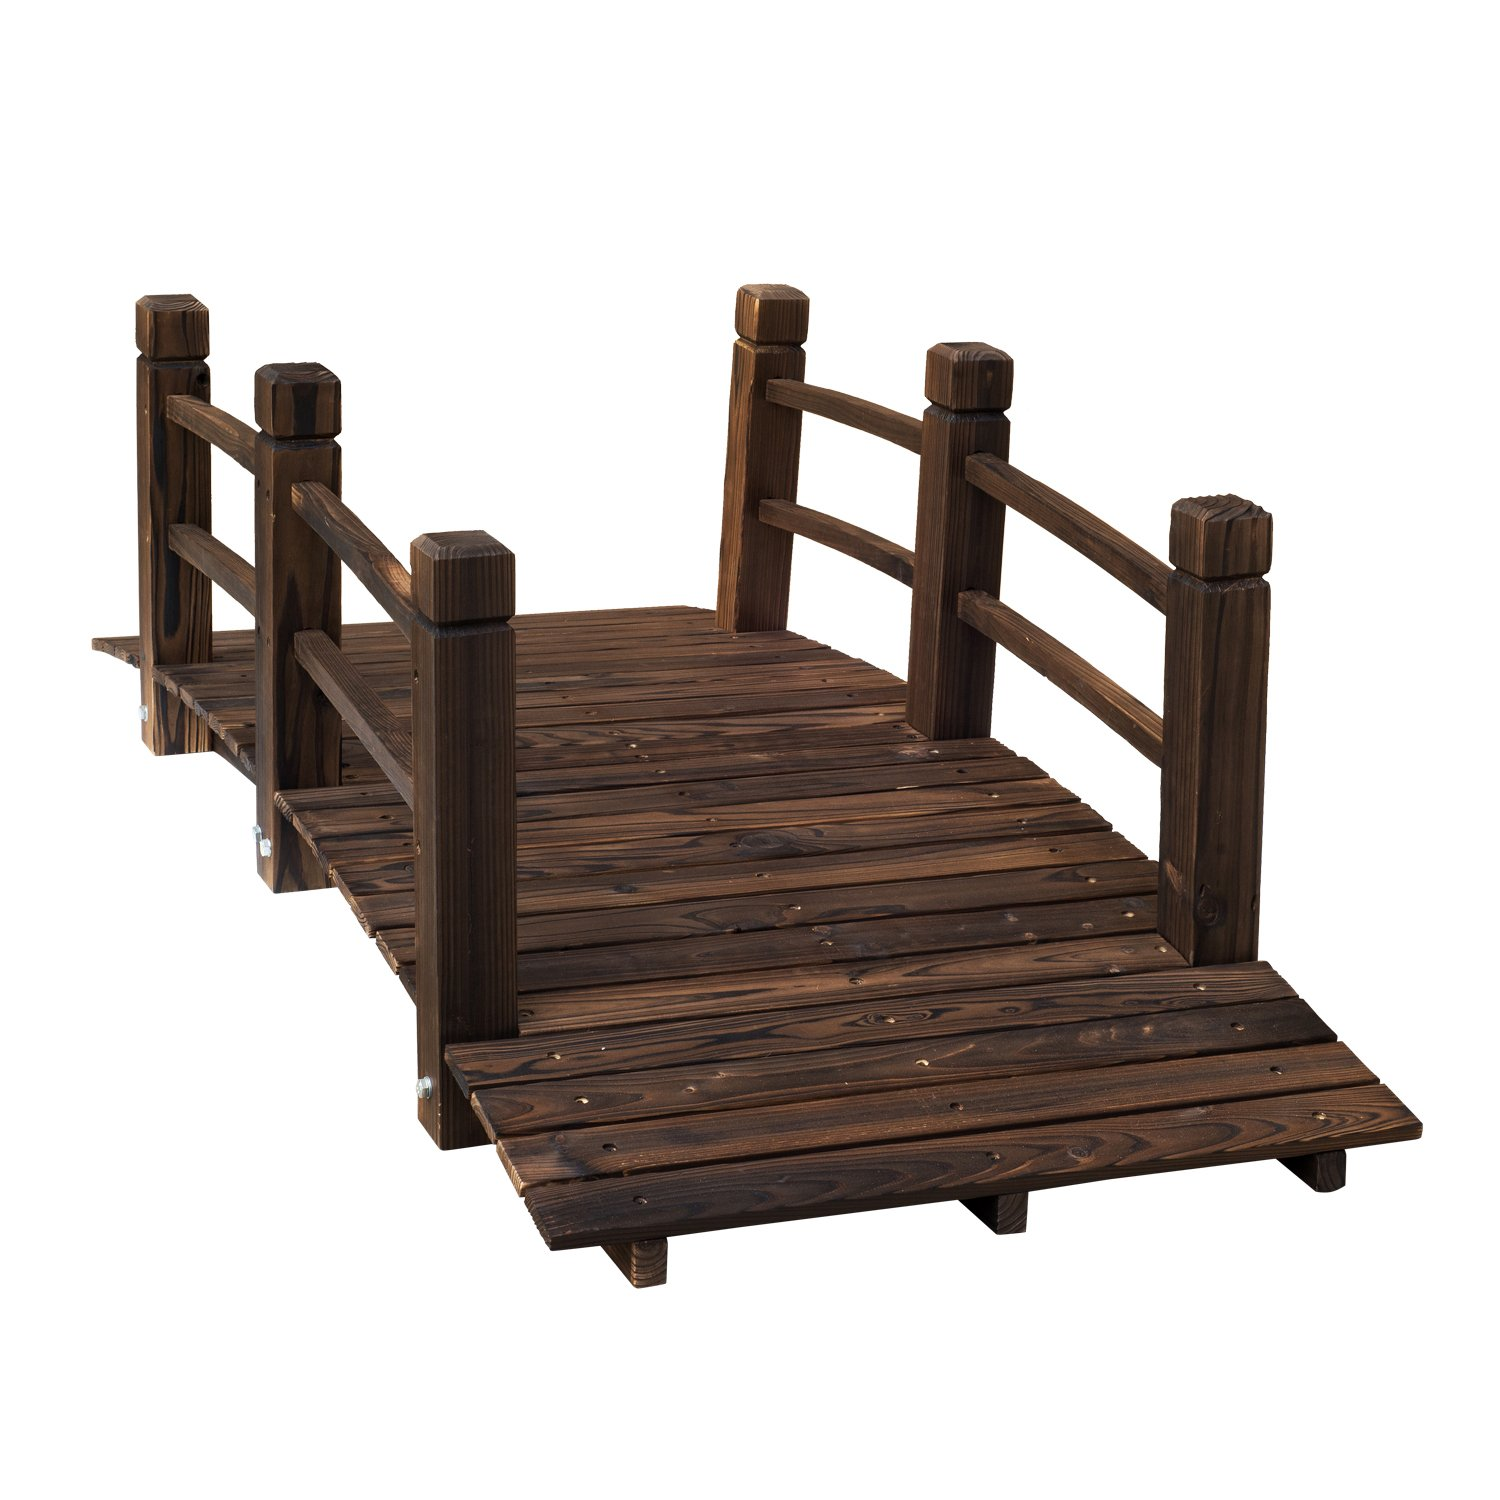 Outsunny 5ft Wooden Garden Bridge Arc Stained Finish Walkway with Railings by Outsunny